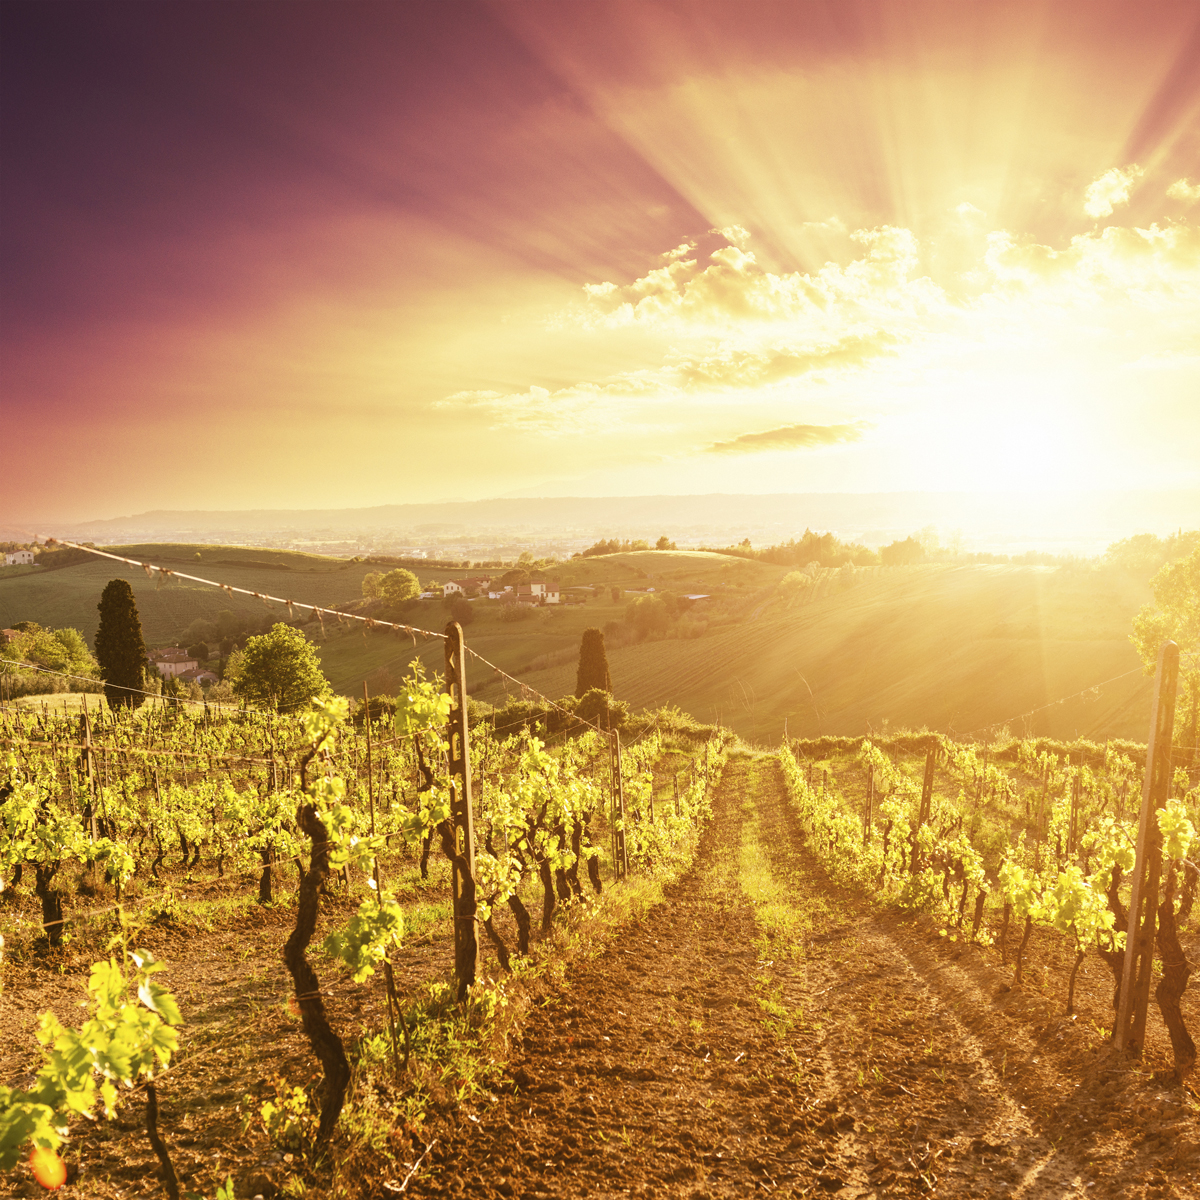 A Hot Future for Burgundy and Bordeaux